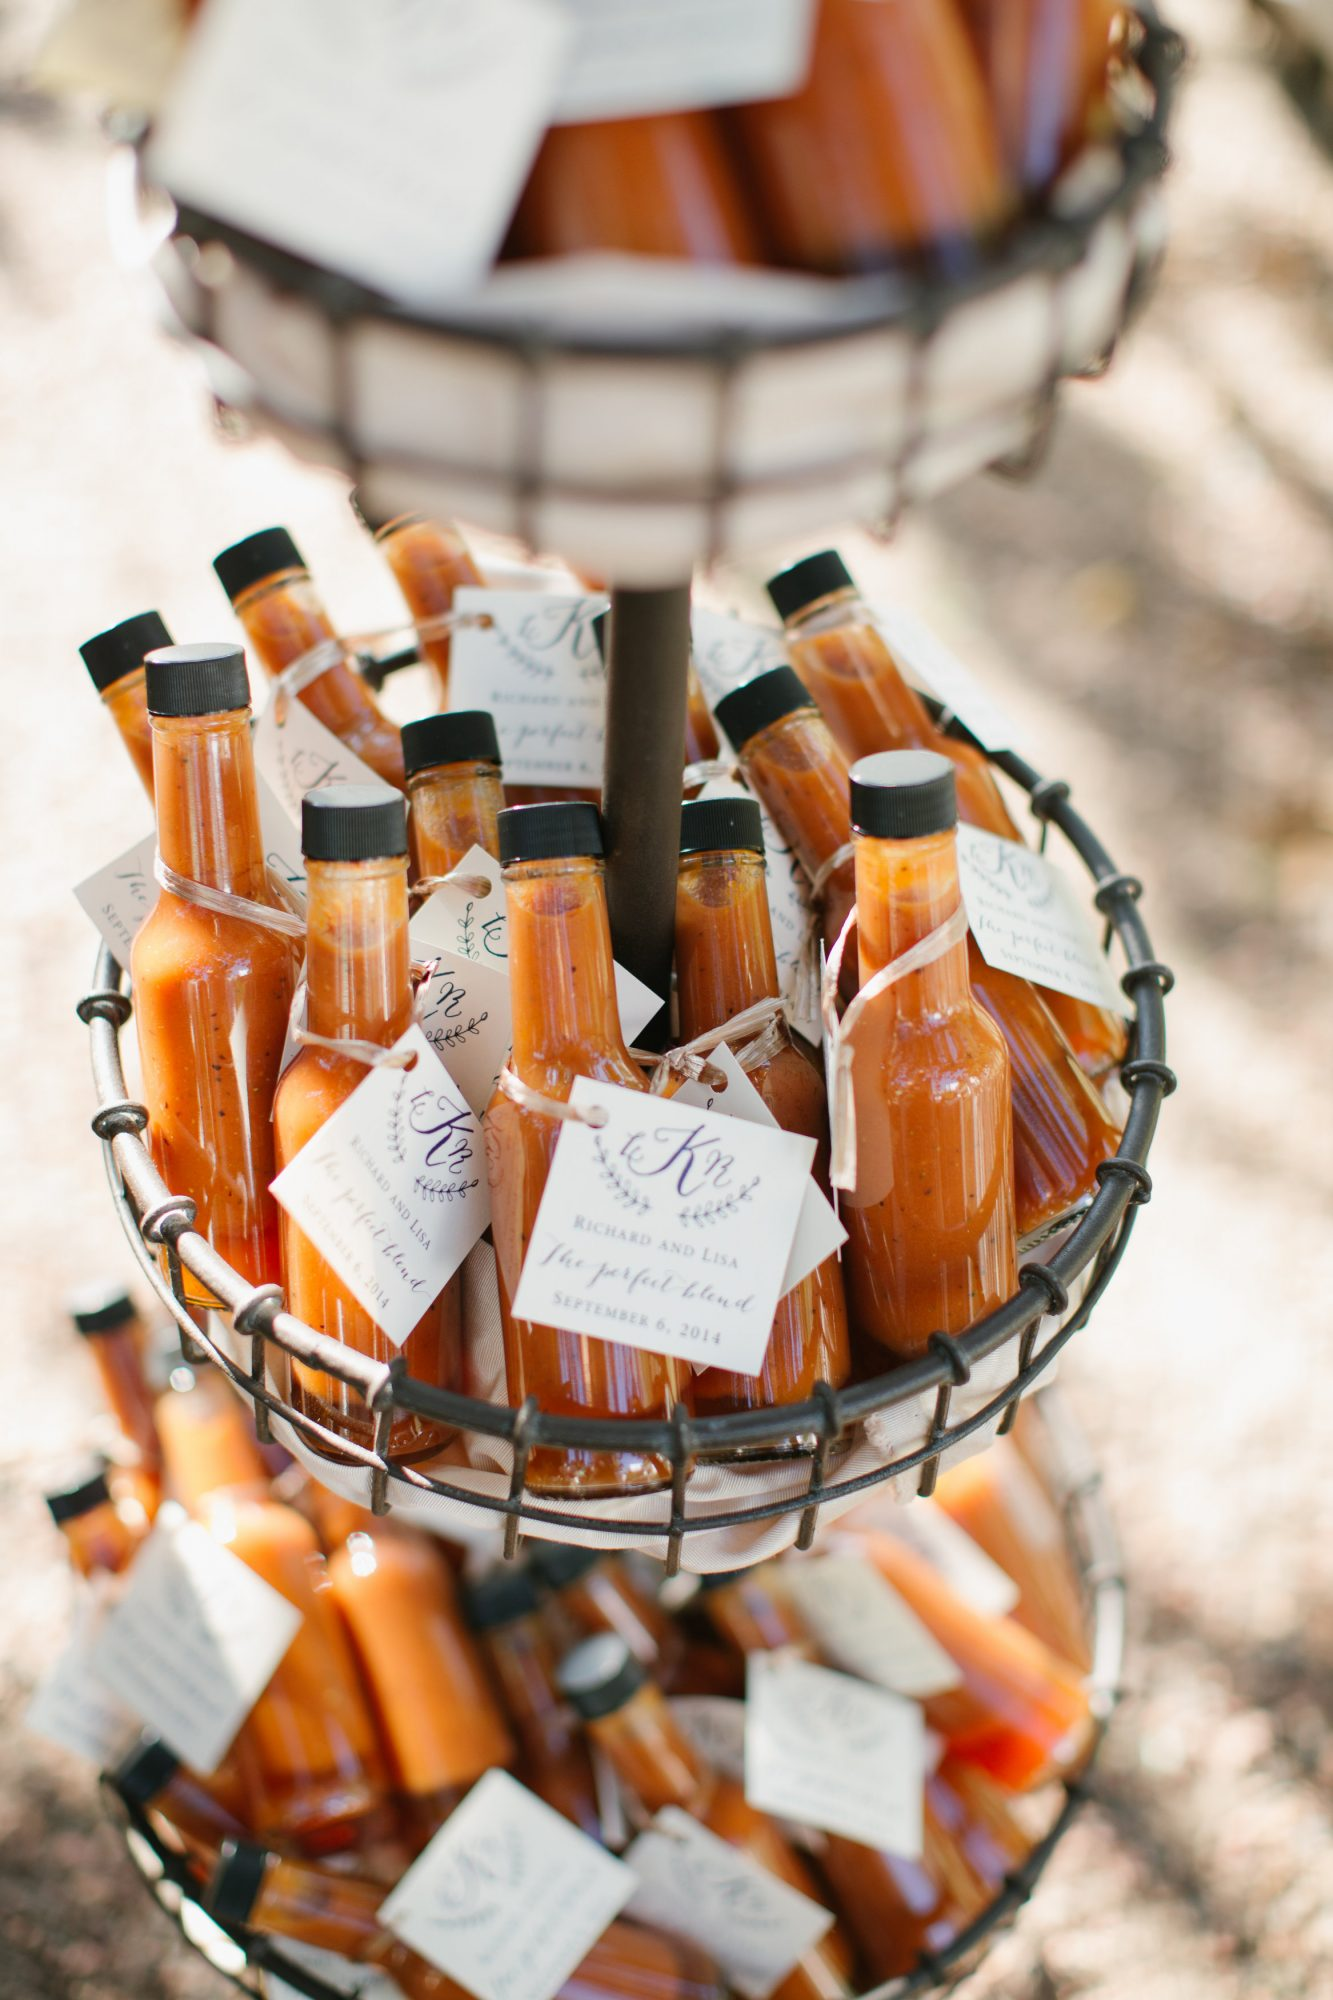 For a homespun twist on hot sauce wedding favors, we love how this bottle put the rich orange color of the sauce on display. A monogrammed label was the perfect finishing touch.